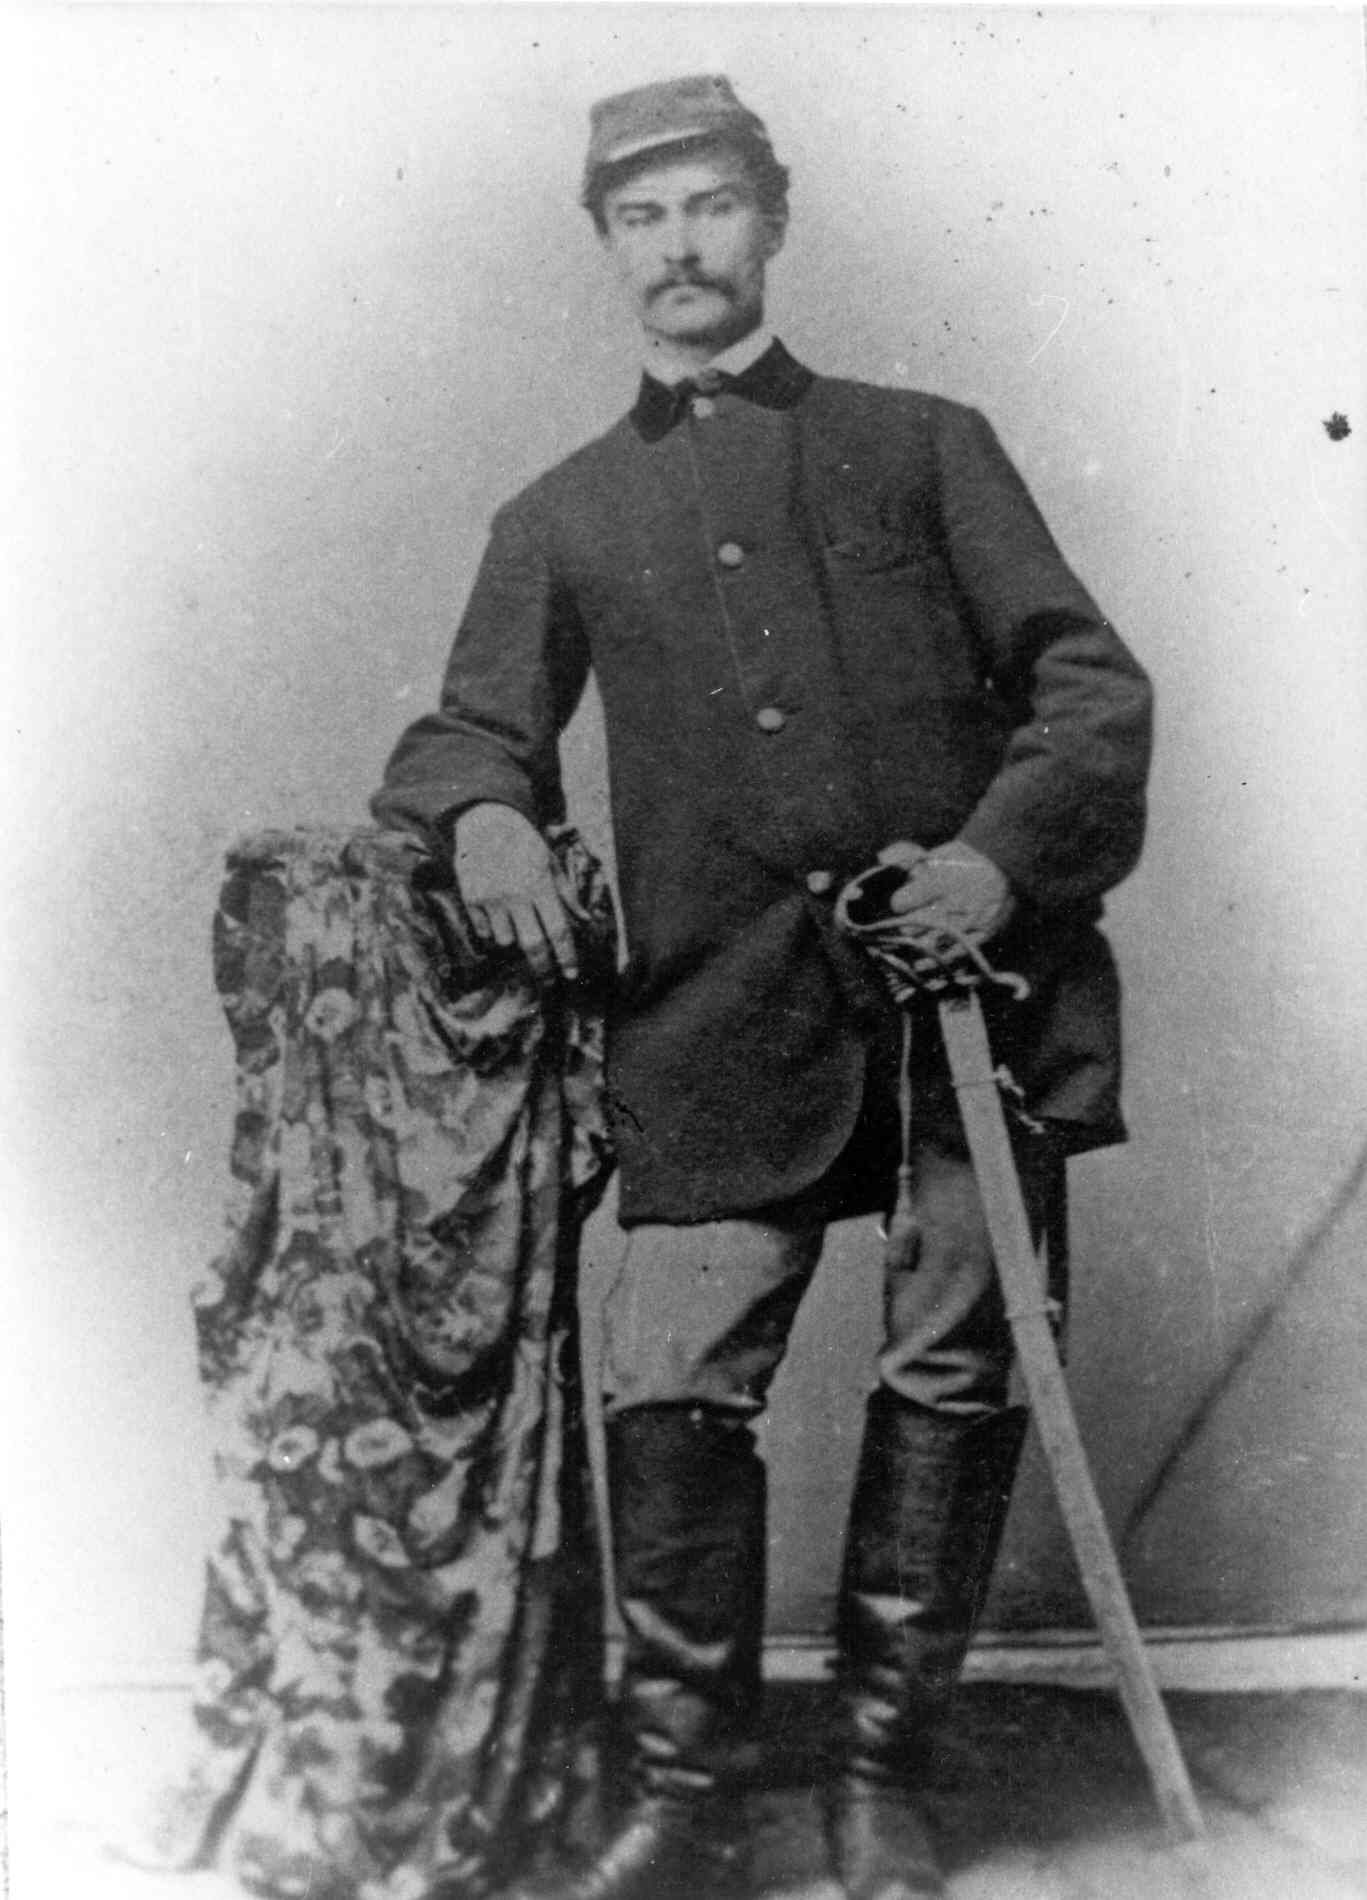 Hubert Dilger was awarded the Metal of Honor for his actions at Chancellorsville.